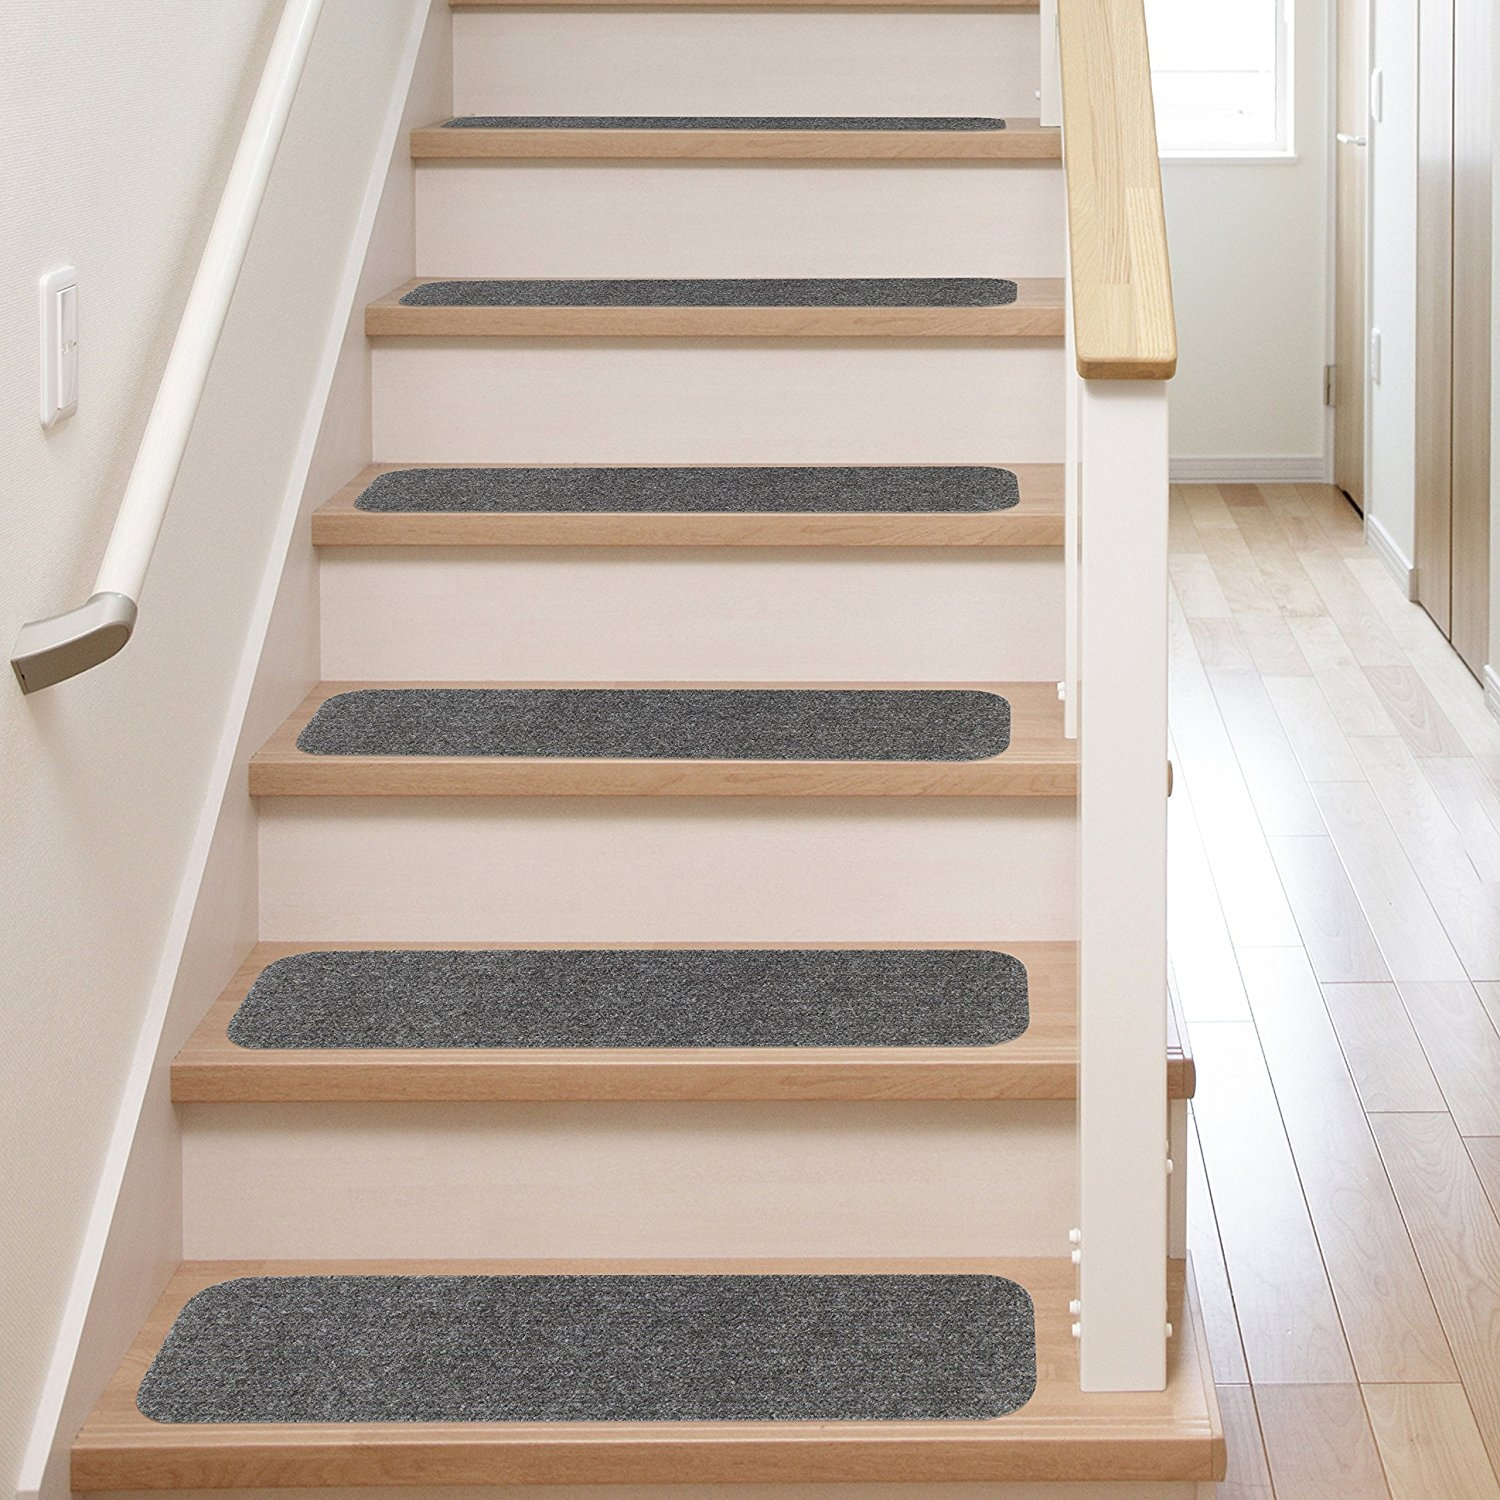 13 Stair Treads Non Slip Carpet Pads Easy Tape Installation For Stair Treads For Wooden Stairs (#1 of 20)